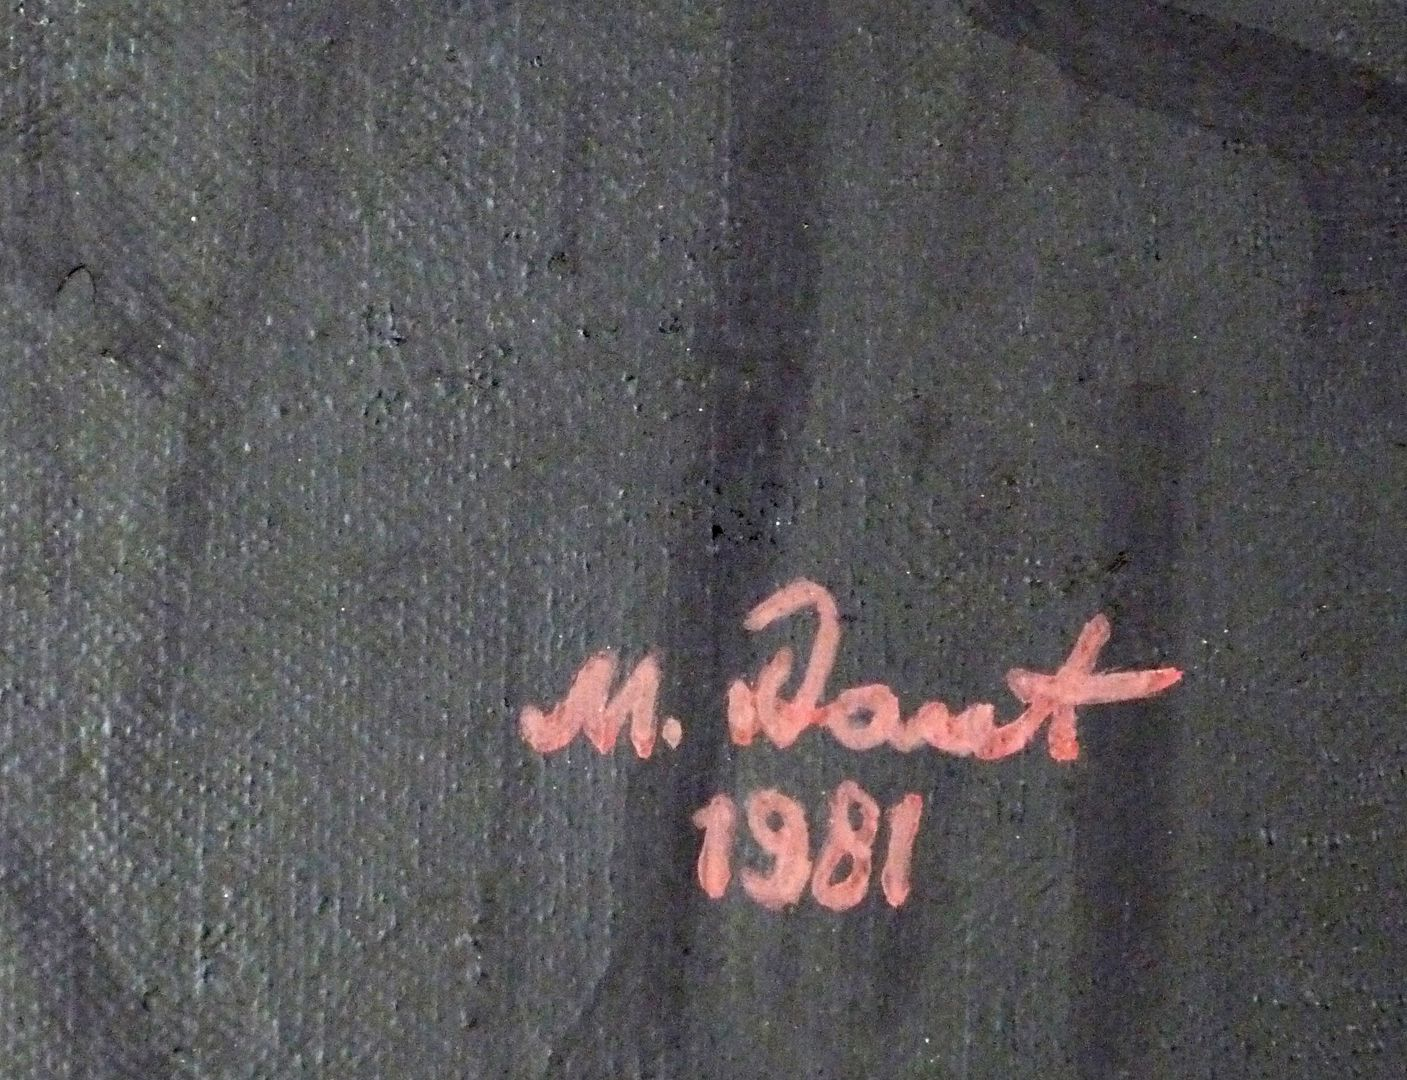 The poet Schramm Signature at the lower right edge of the picture